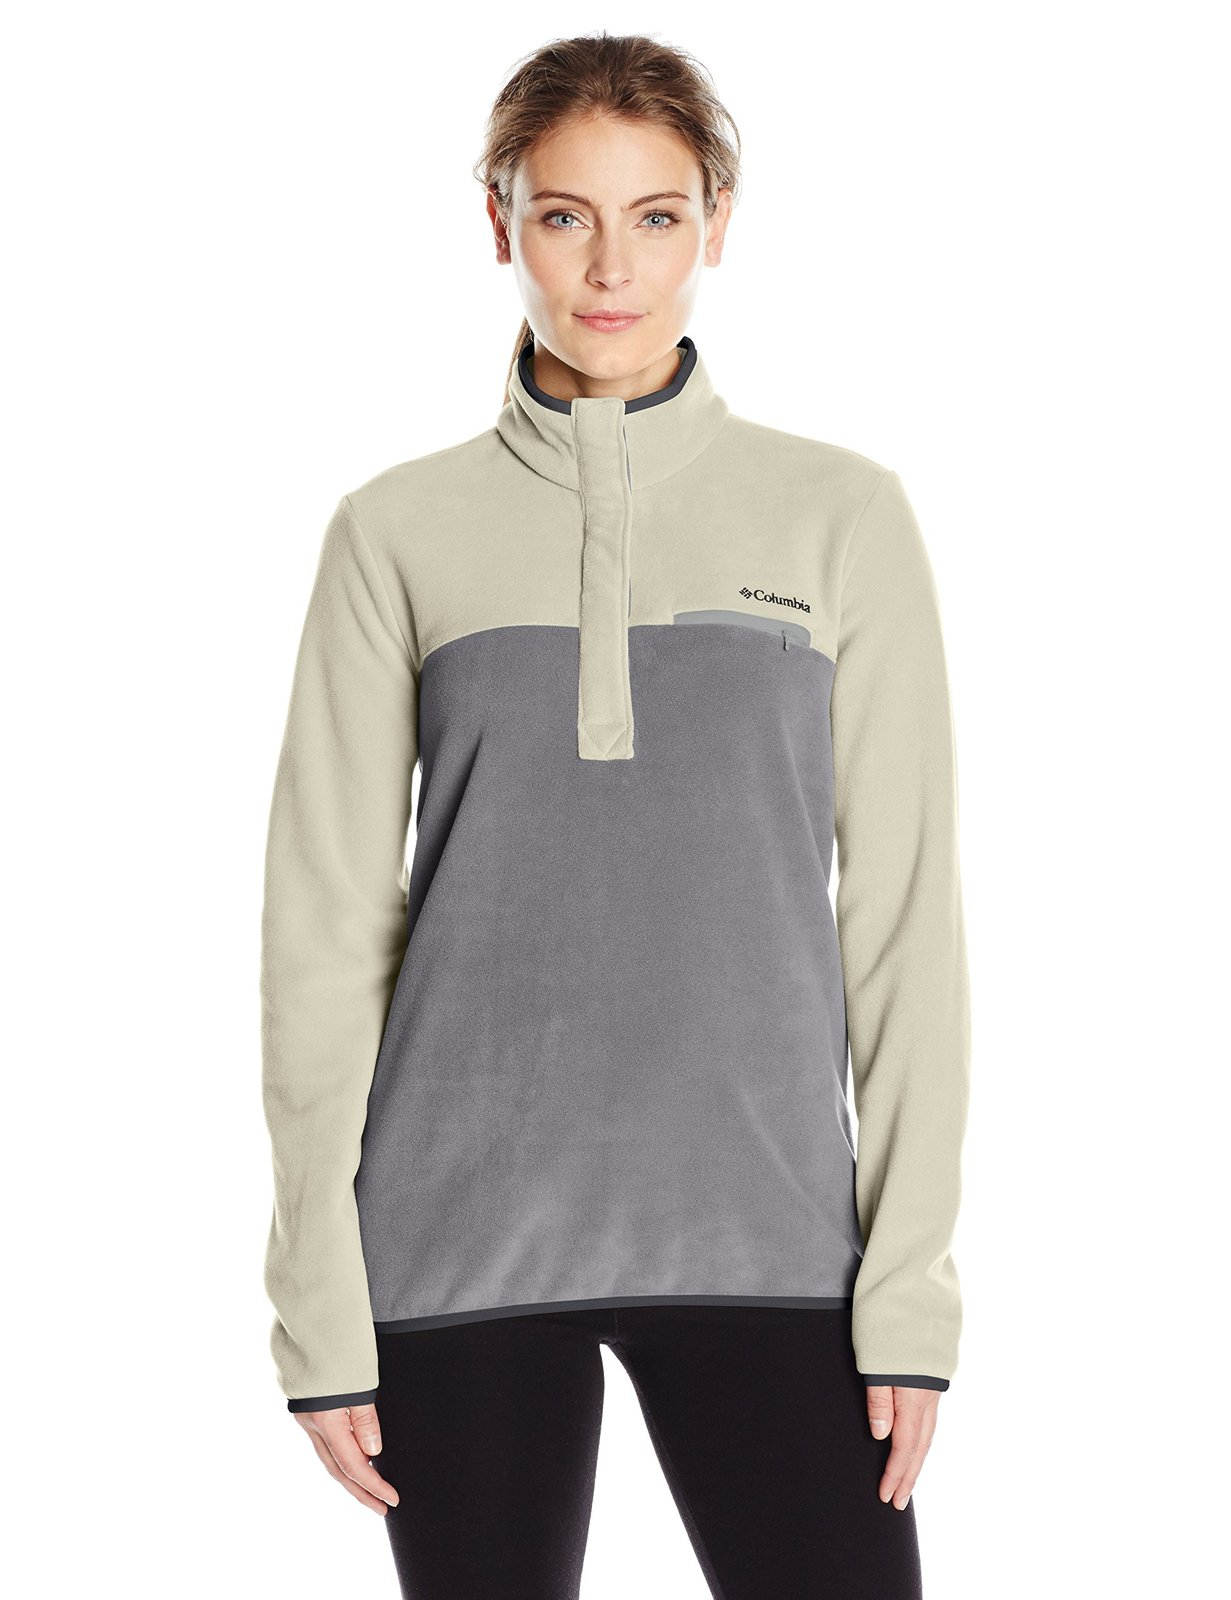 Columbia Women's Mountain Side Pullover, Chalk Columbia Grey, Small